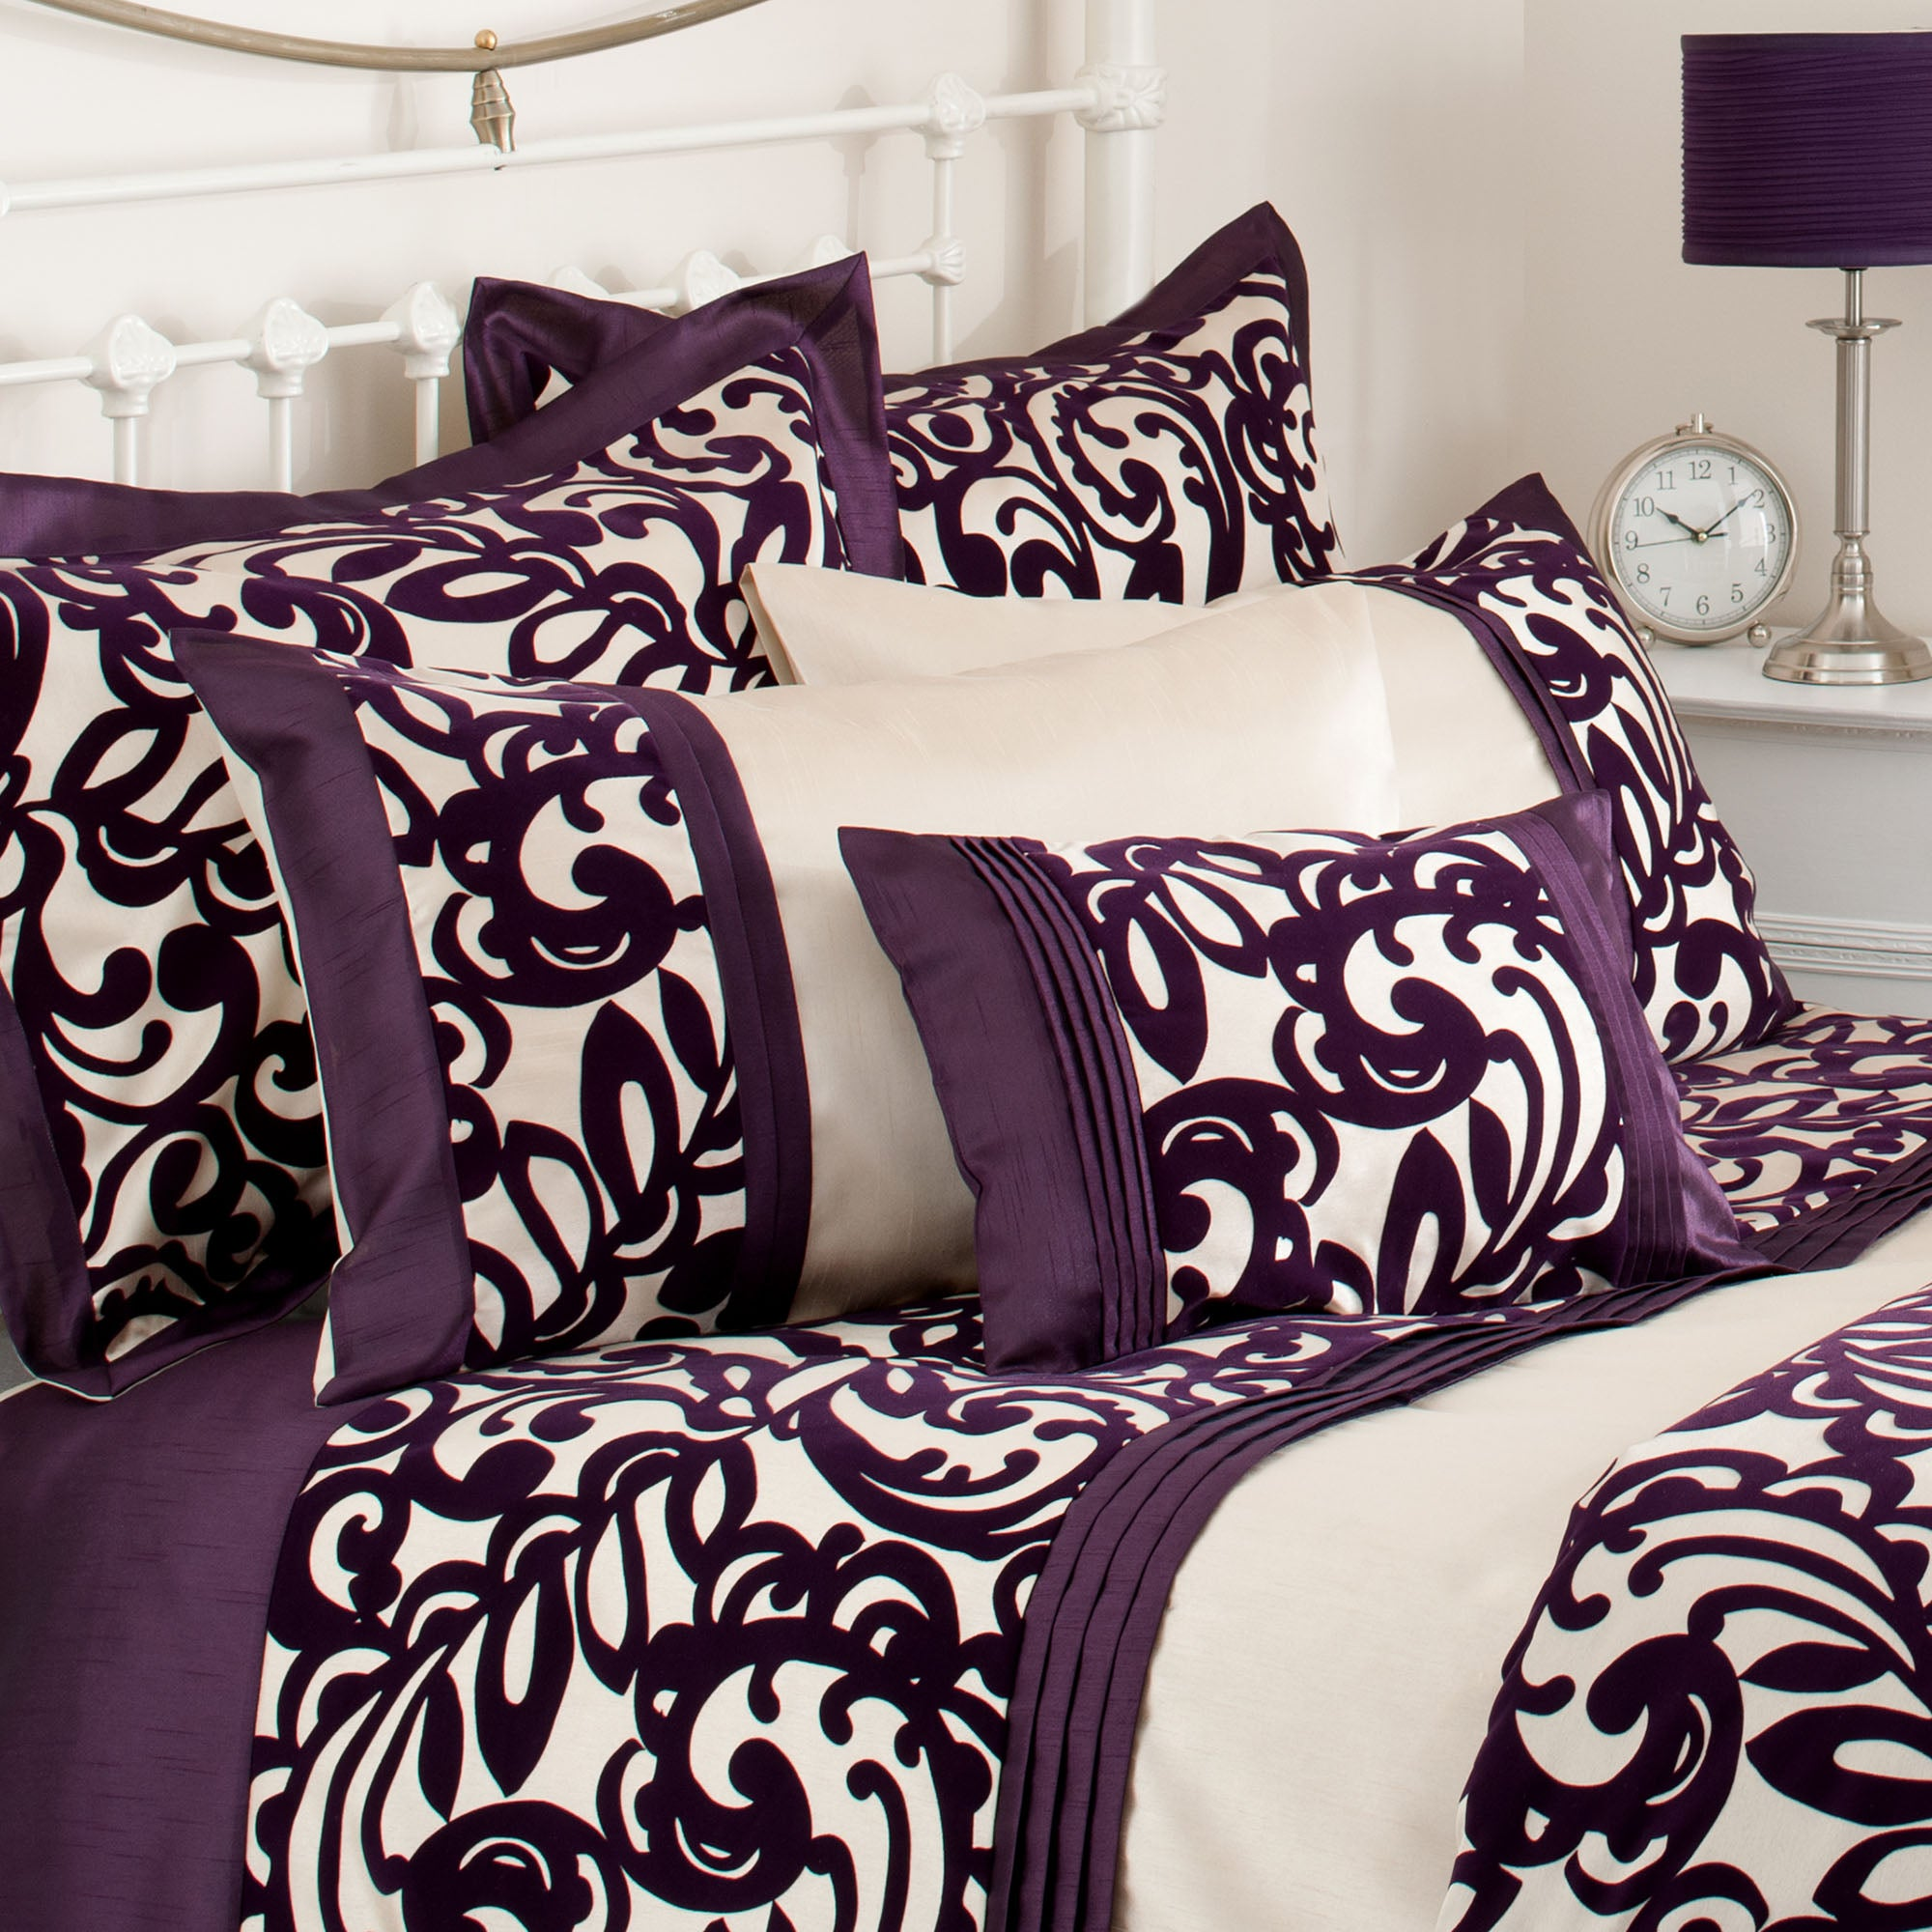 Plum Baroque Flock Collection Boudoir Cushion